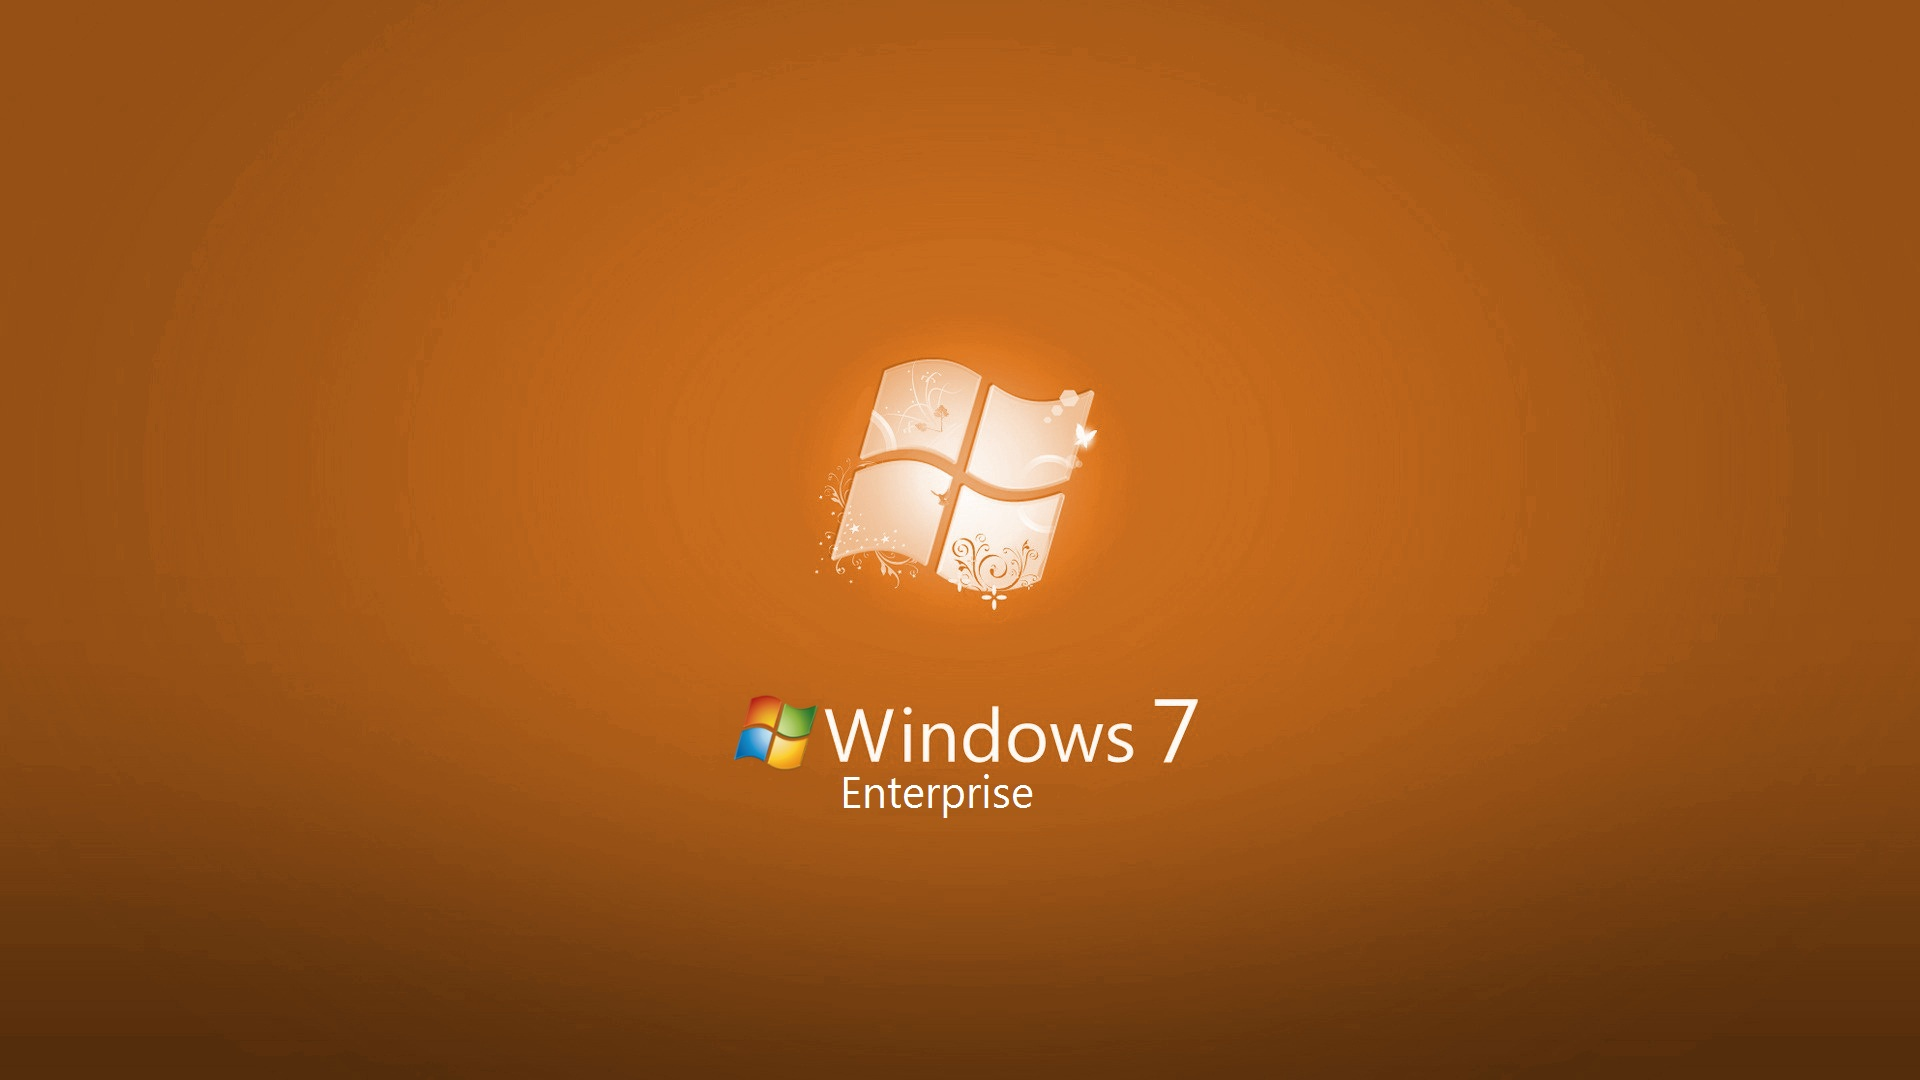 Whatsapp Pc Free Download For Windows 7 Softonic   Share The ...